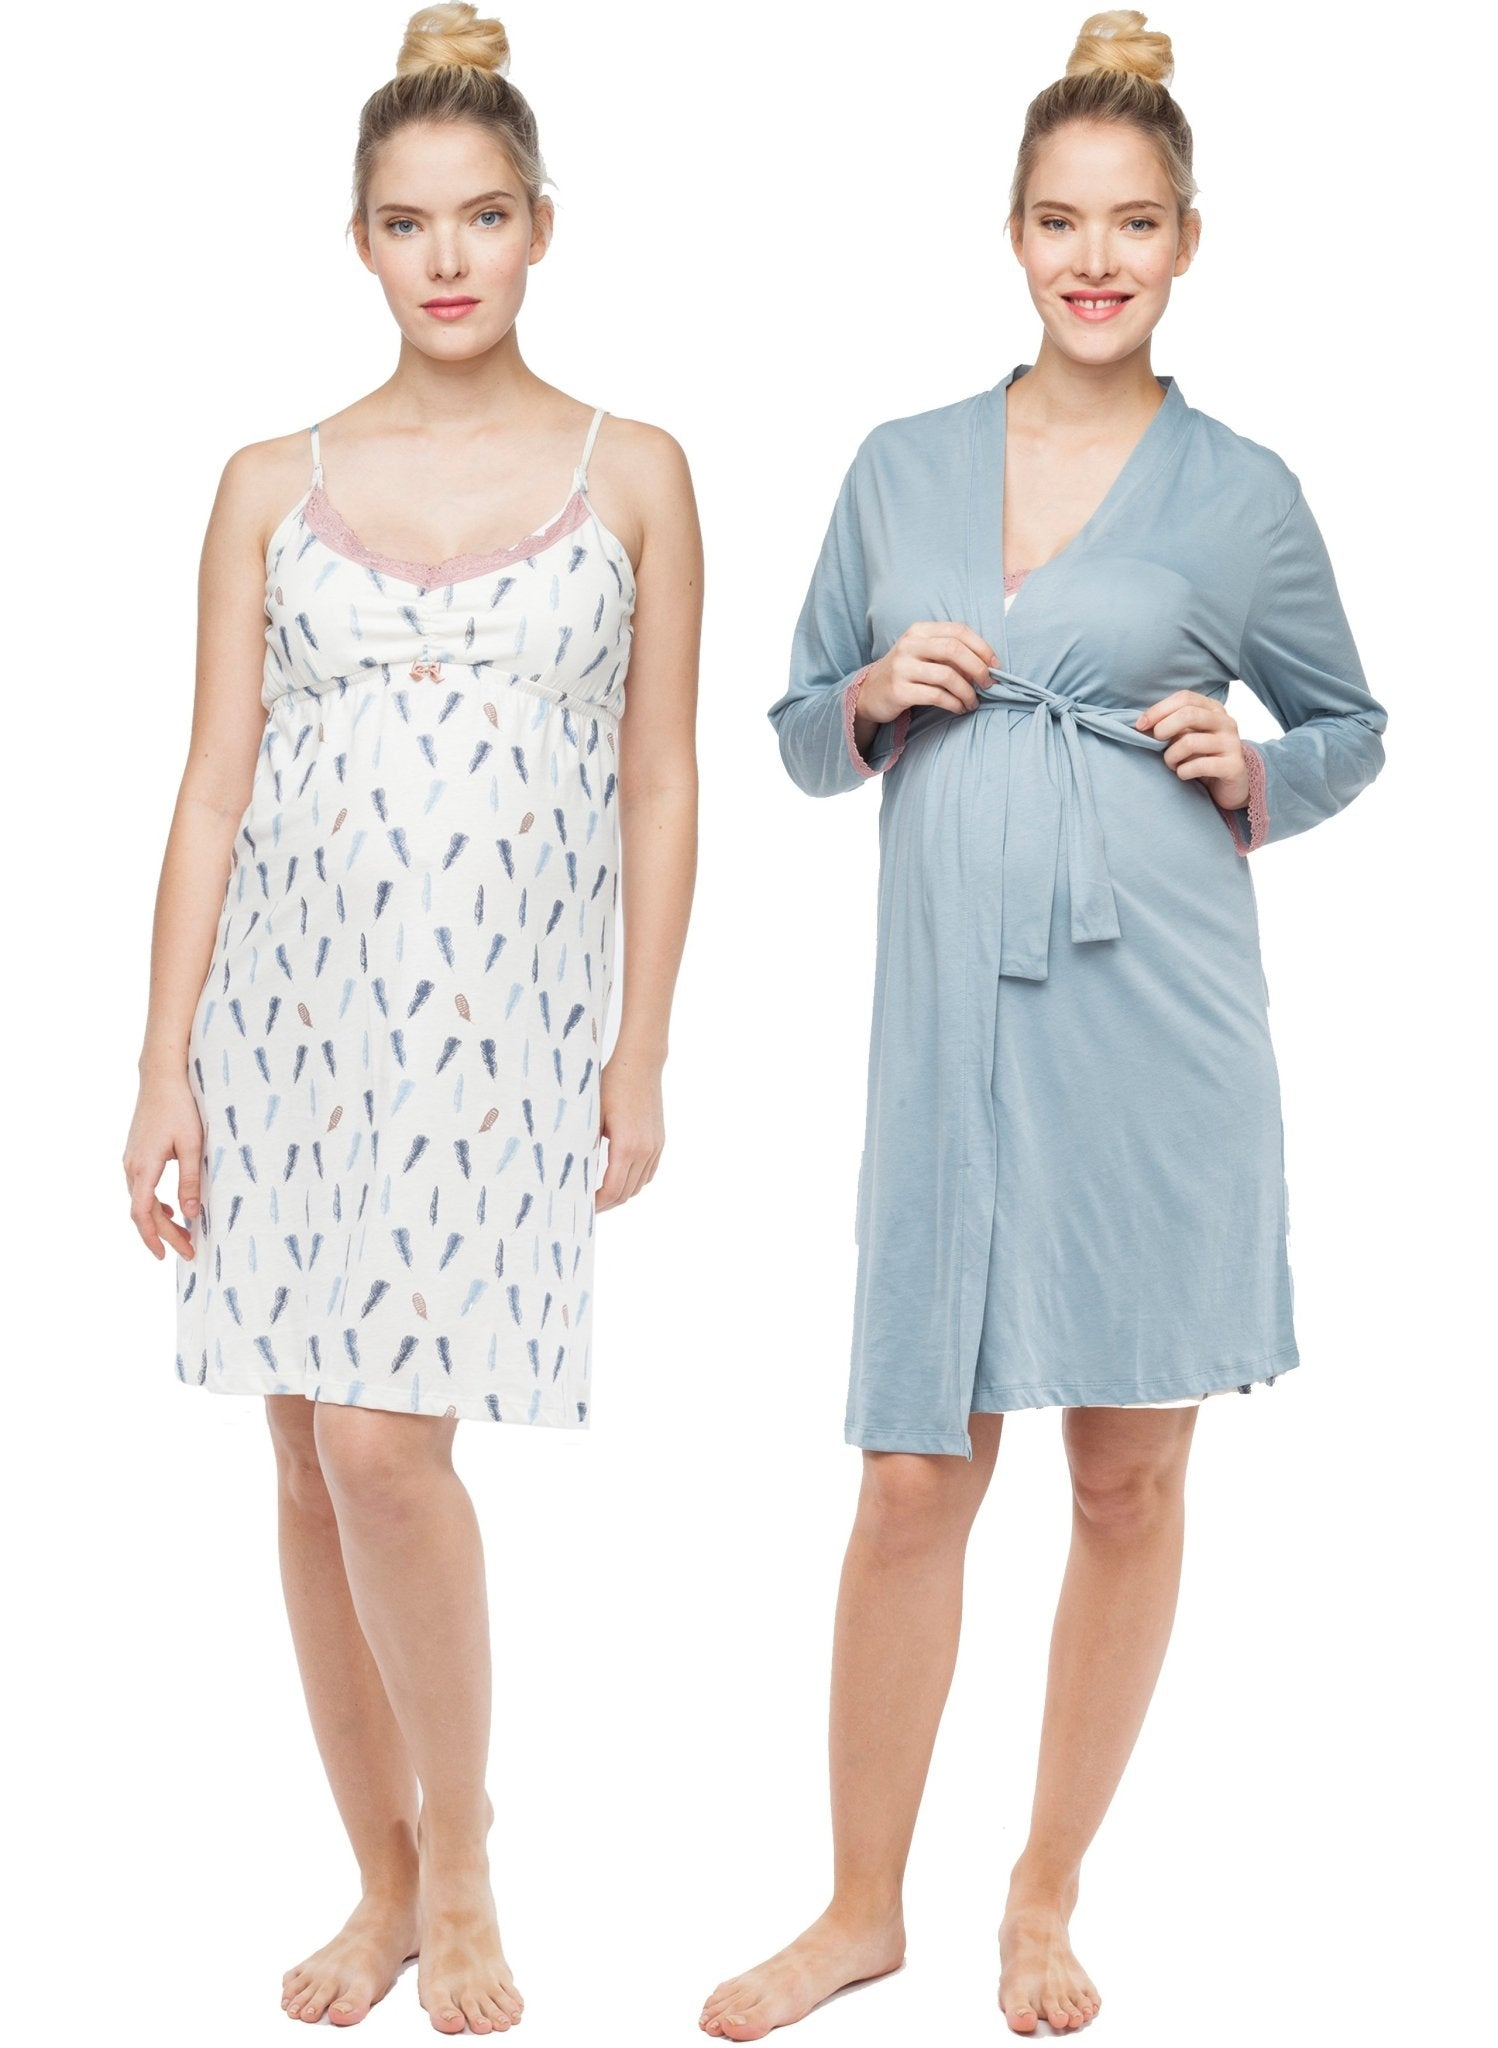 Plume Maternity/Nursing Chemise & Robe 2-Piece Set - Mums and Bumps